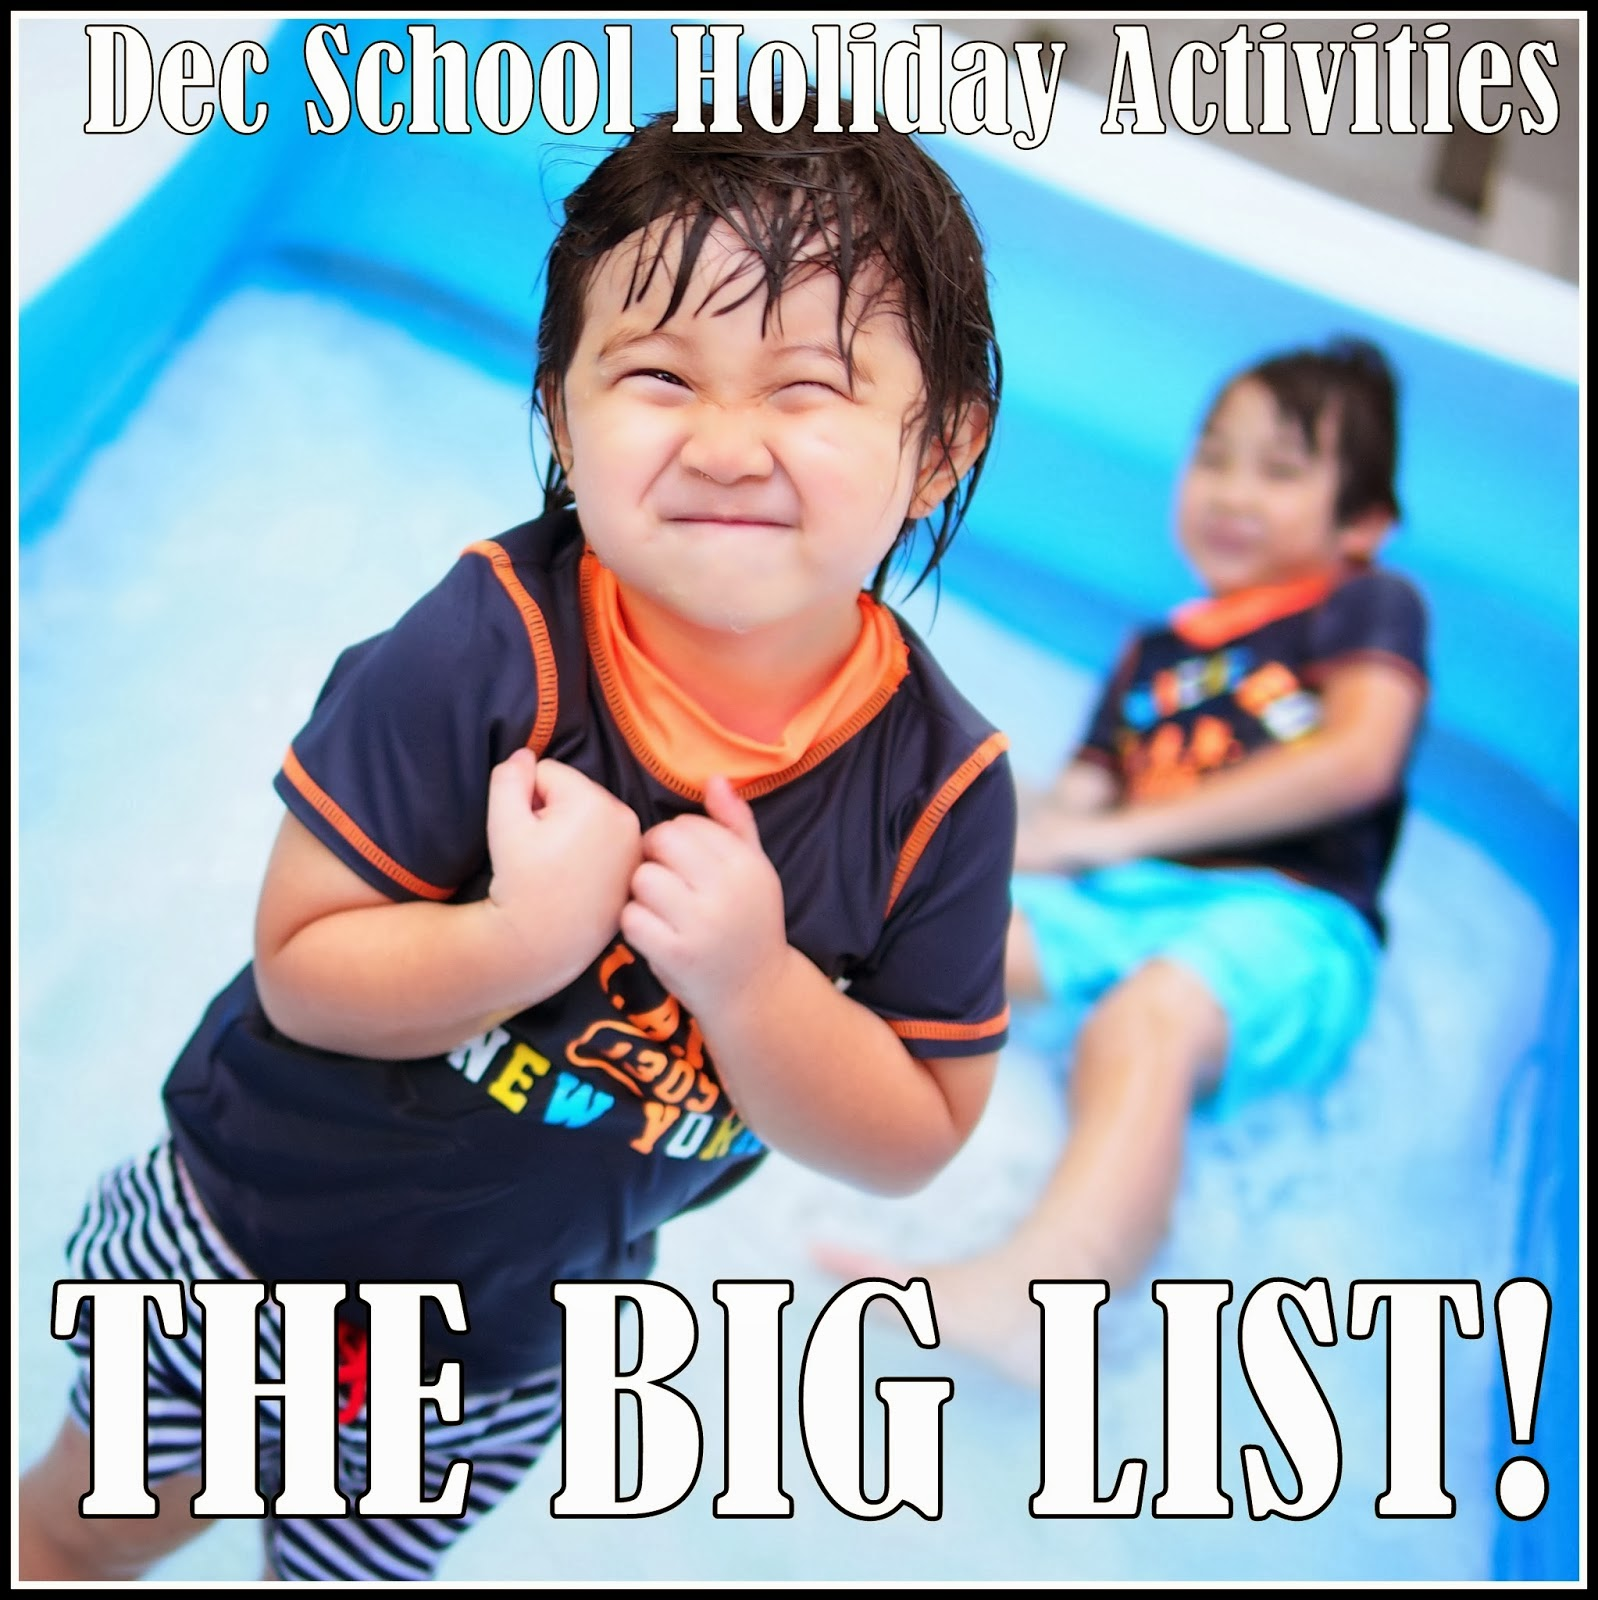 School Holiday Activities for Kids